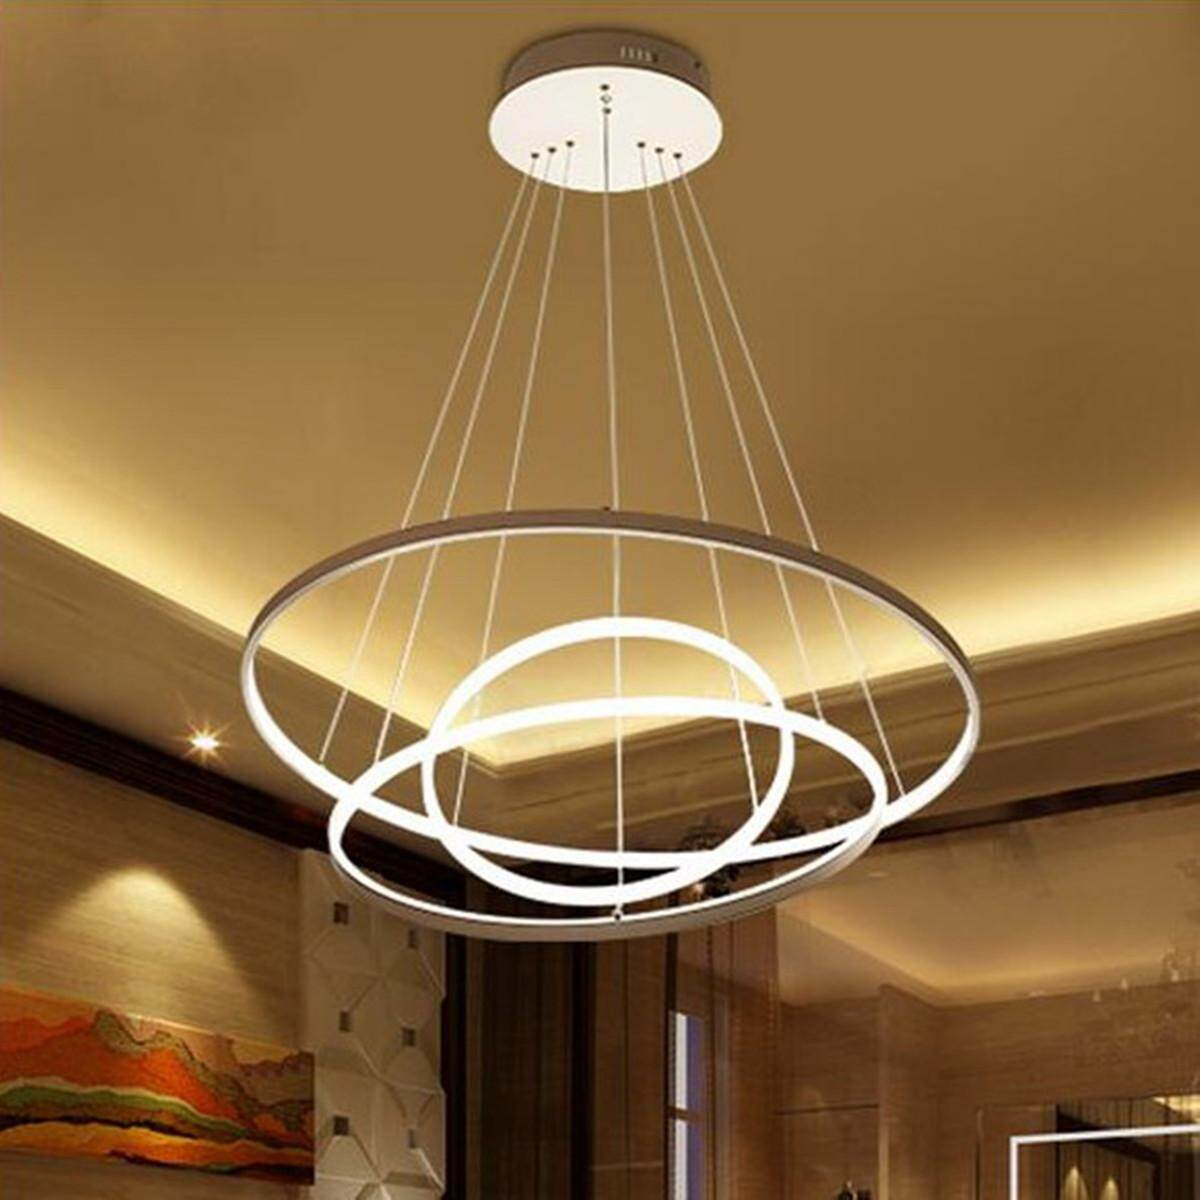 Circular Ring Pendant Lights 3/2/1 Circle Rings Acrylic Aluminum LED Chandelier#Warm Light - intl Singapore